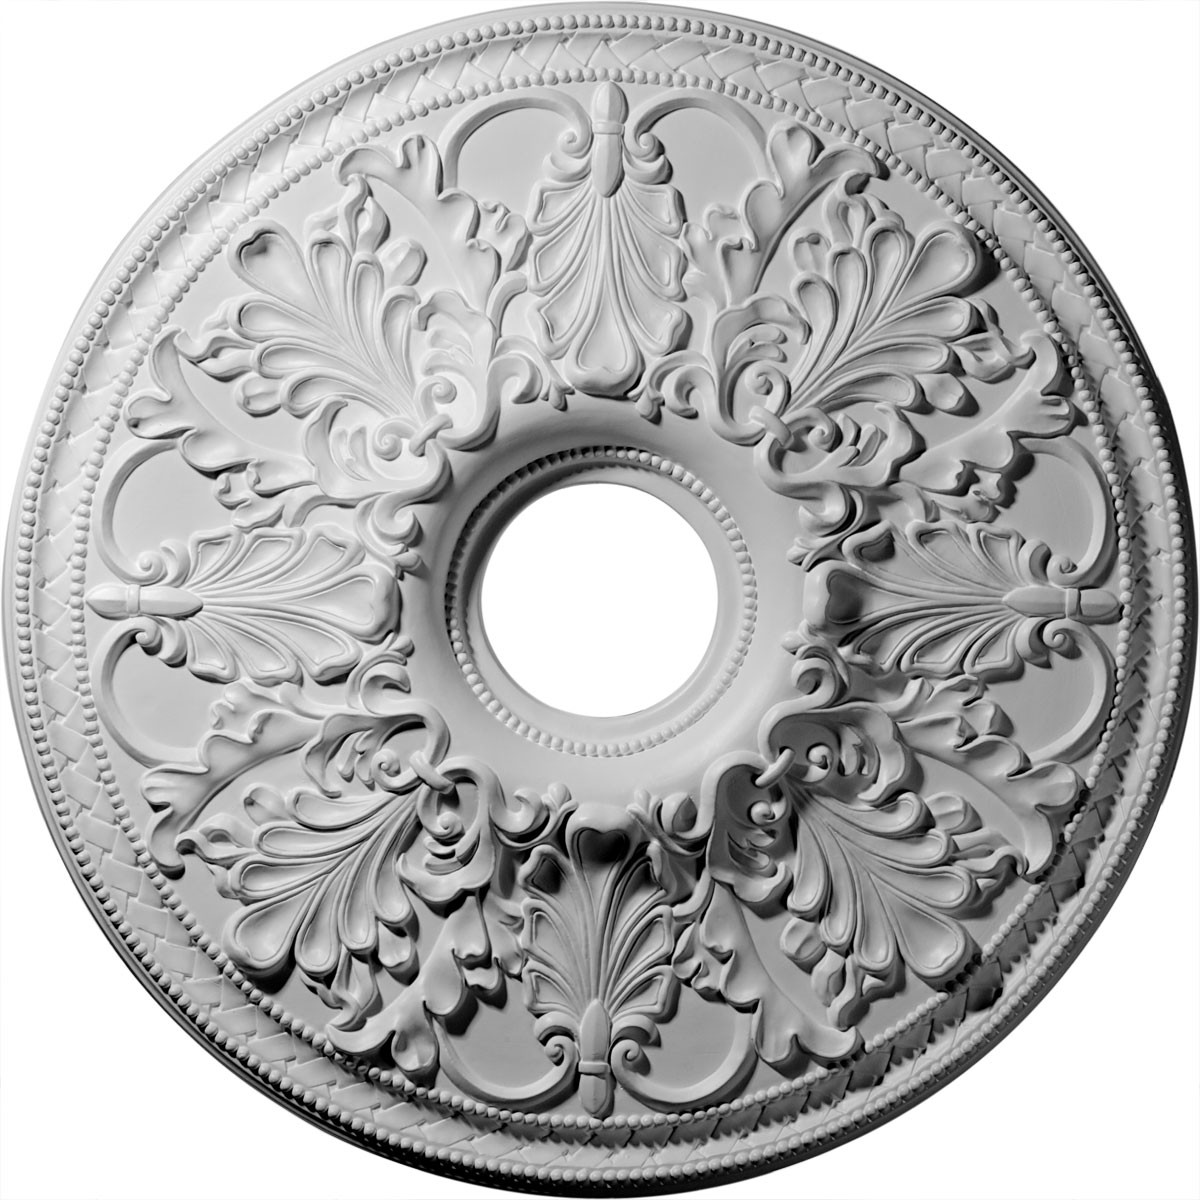 """EM-CM23AS - 23 7/8""""OD x 4""""ID x 2 1/8""""P Ashley Ceiling Medallion (Fits Canopies up to 4 3/4"""")"""